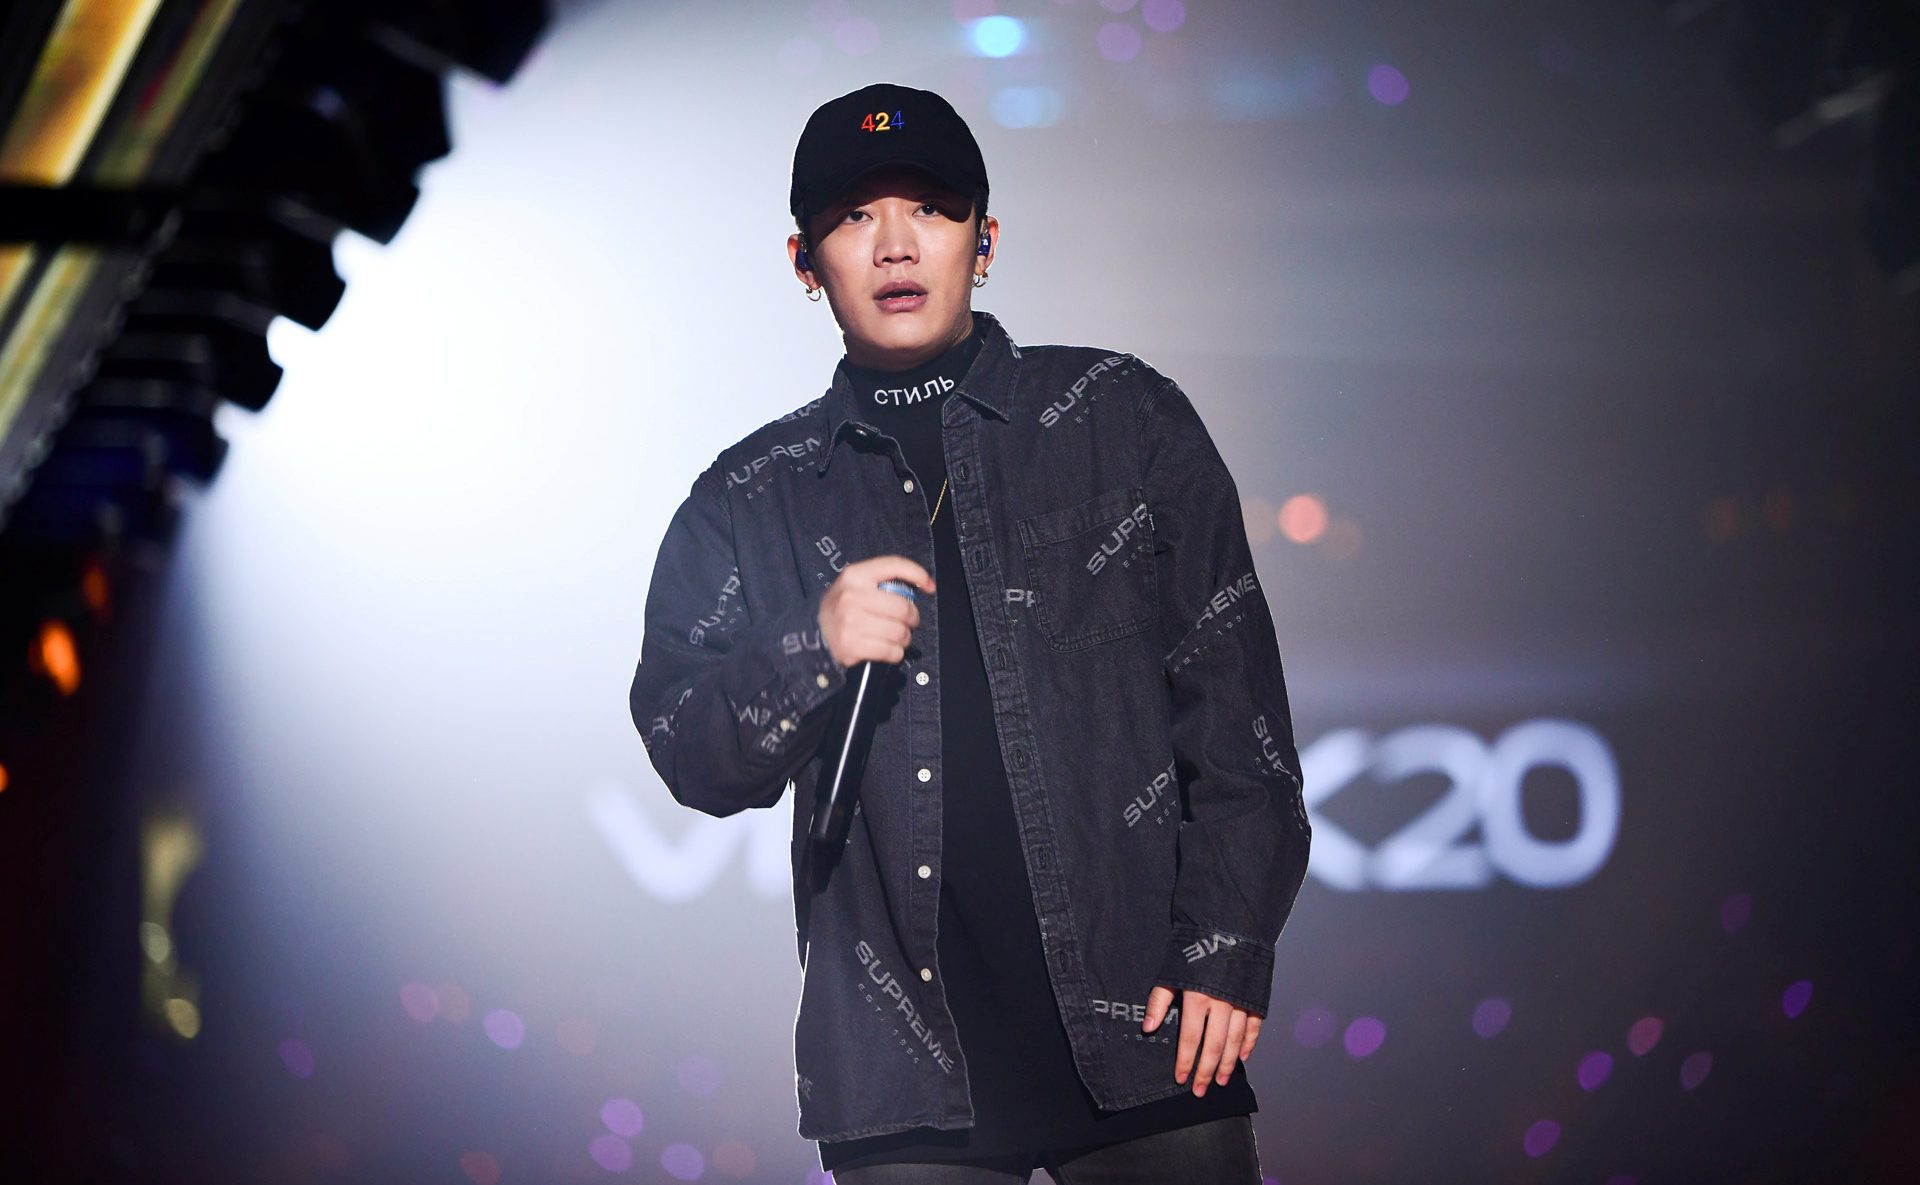 Chinese rap singer Wang Hao, better known by his stage name PG One, performs during a New Year concert in Guangzhou, Guangdong province, China January 1, 2018. Picture taken January 1, 2018. REUTERS/Stringer ATTENTION EDITORS - THIS IMAGE WAS PROVIDED BY A THIRD PARTY. CHINA OUT. - RC15B55007F0